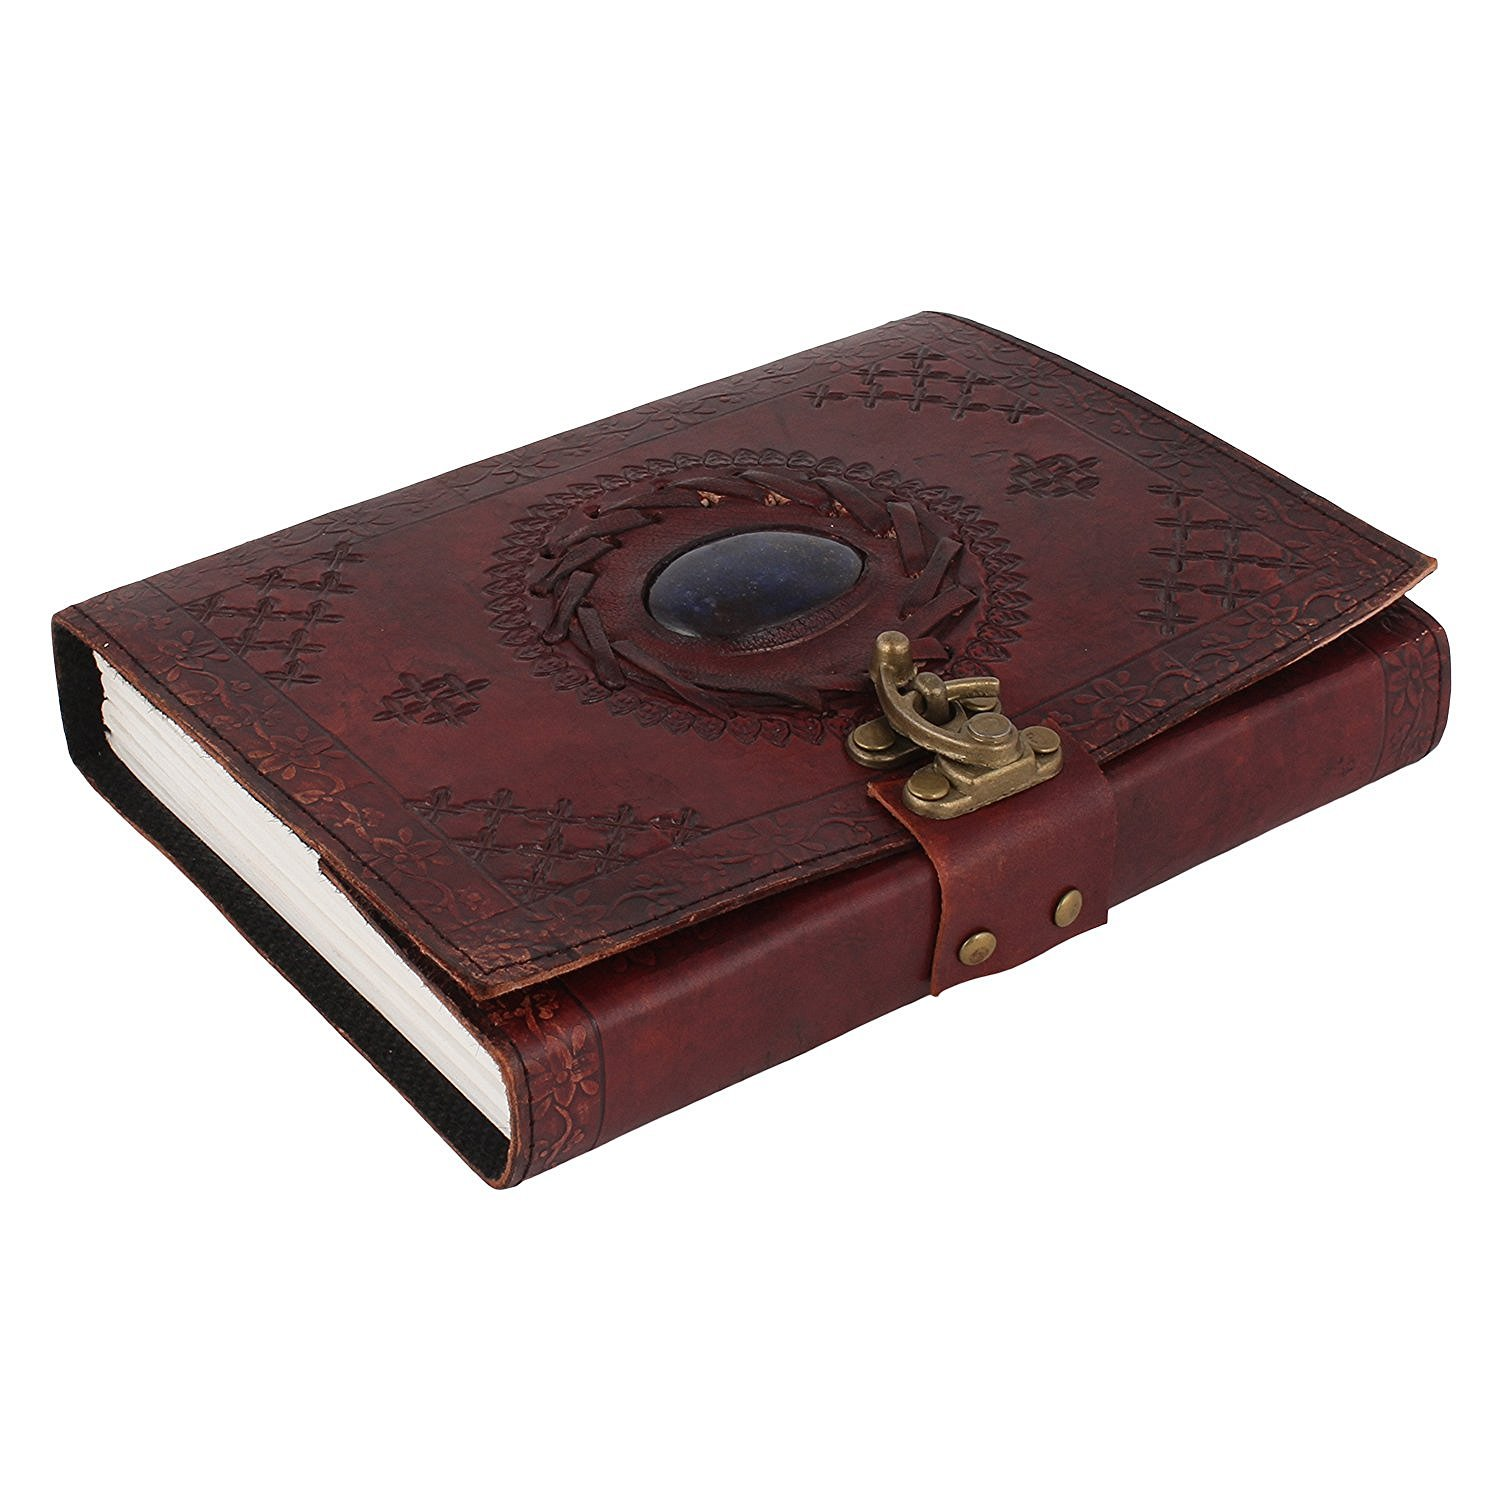 leather journals leather notebook Leather Diary Stitched & Stoned With Buckle Closure ANUENT